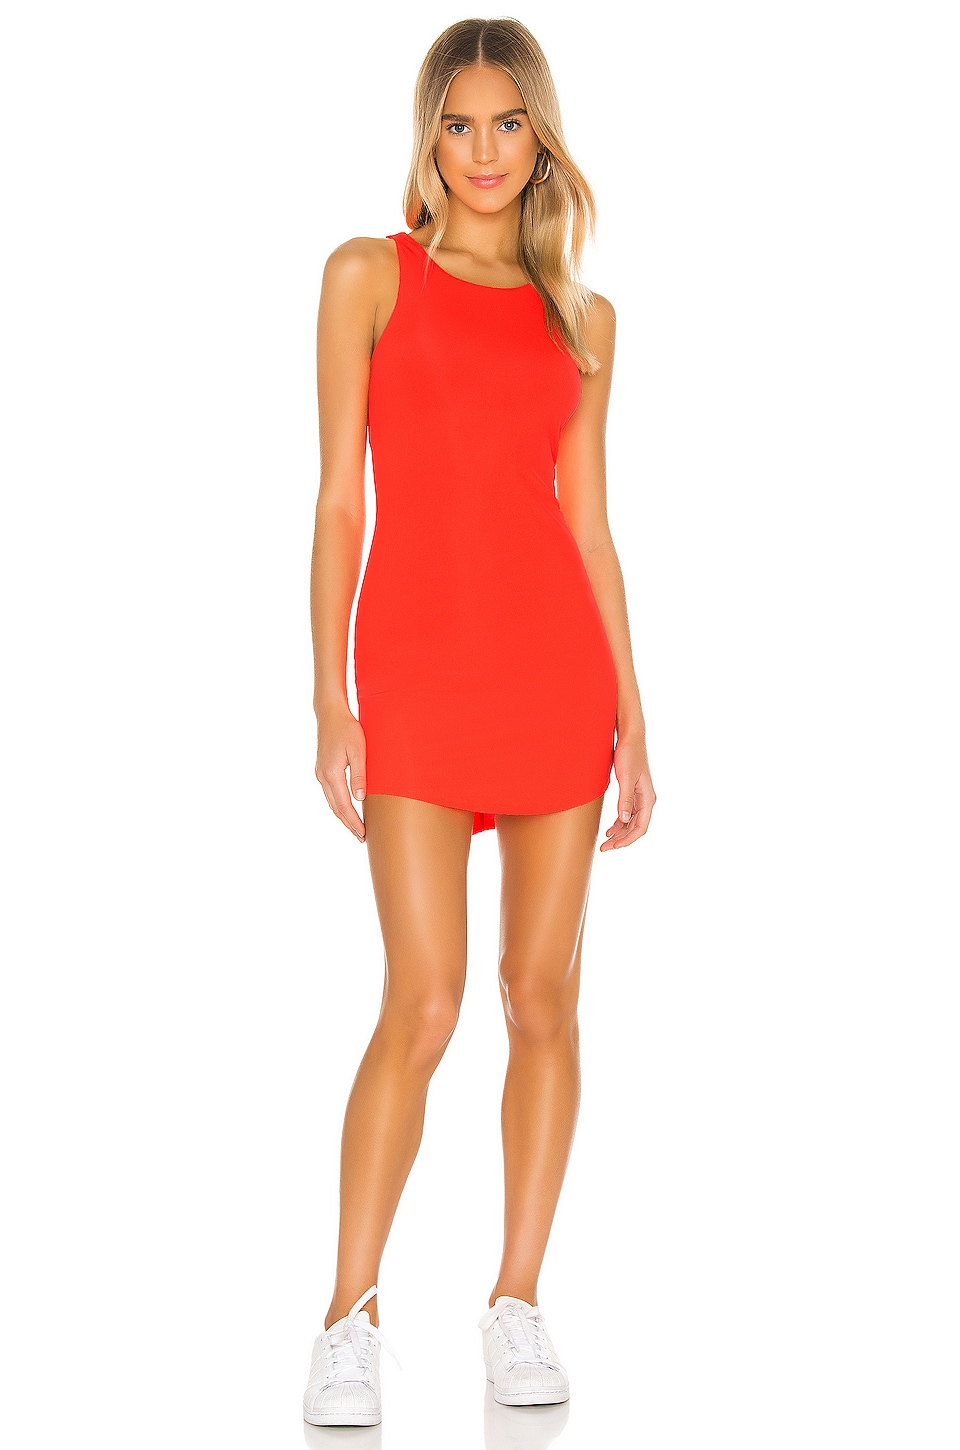 Daya Mini Dress             h:ours                                                                                                       CA$ 193.79 9